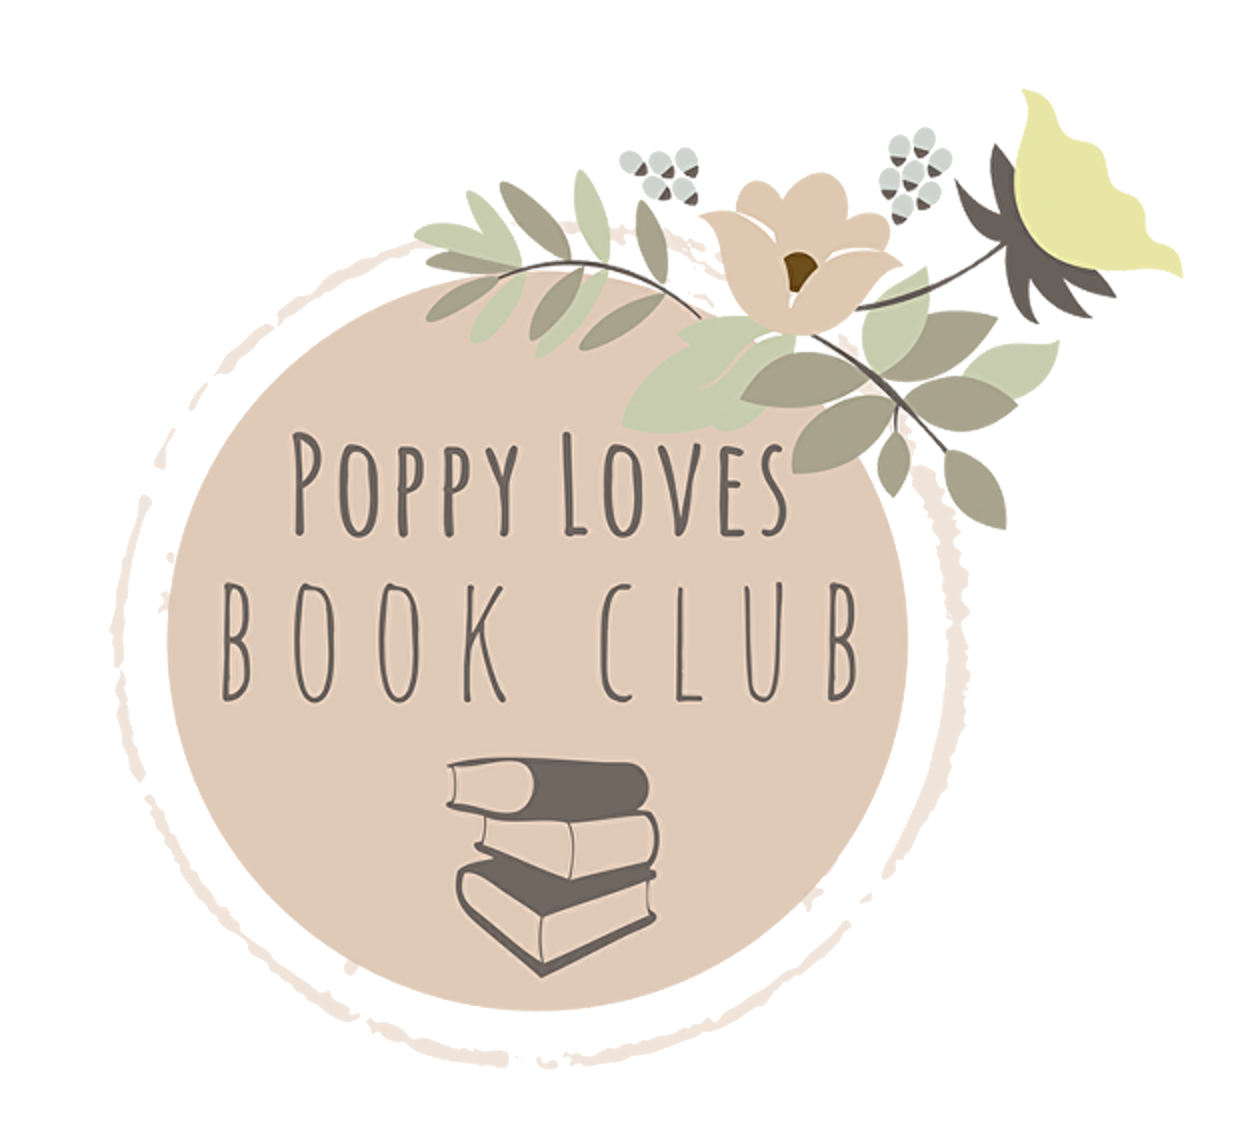 Book group clipart picture library download Social - Poppy Loves Book Club picture library download